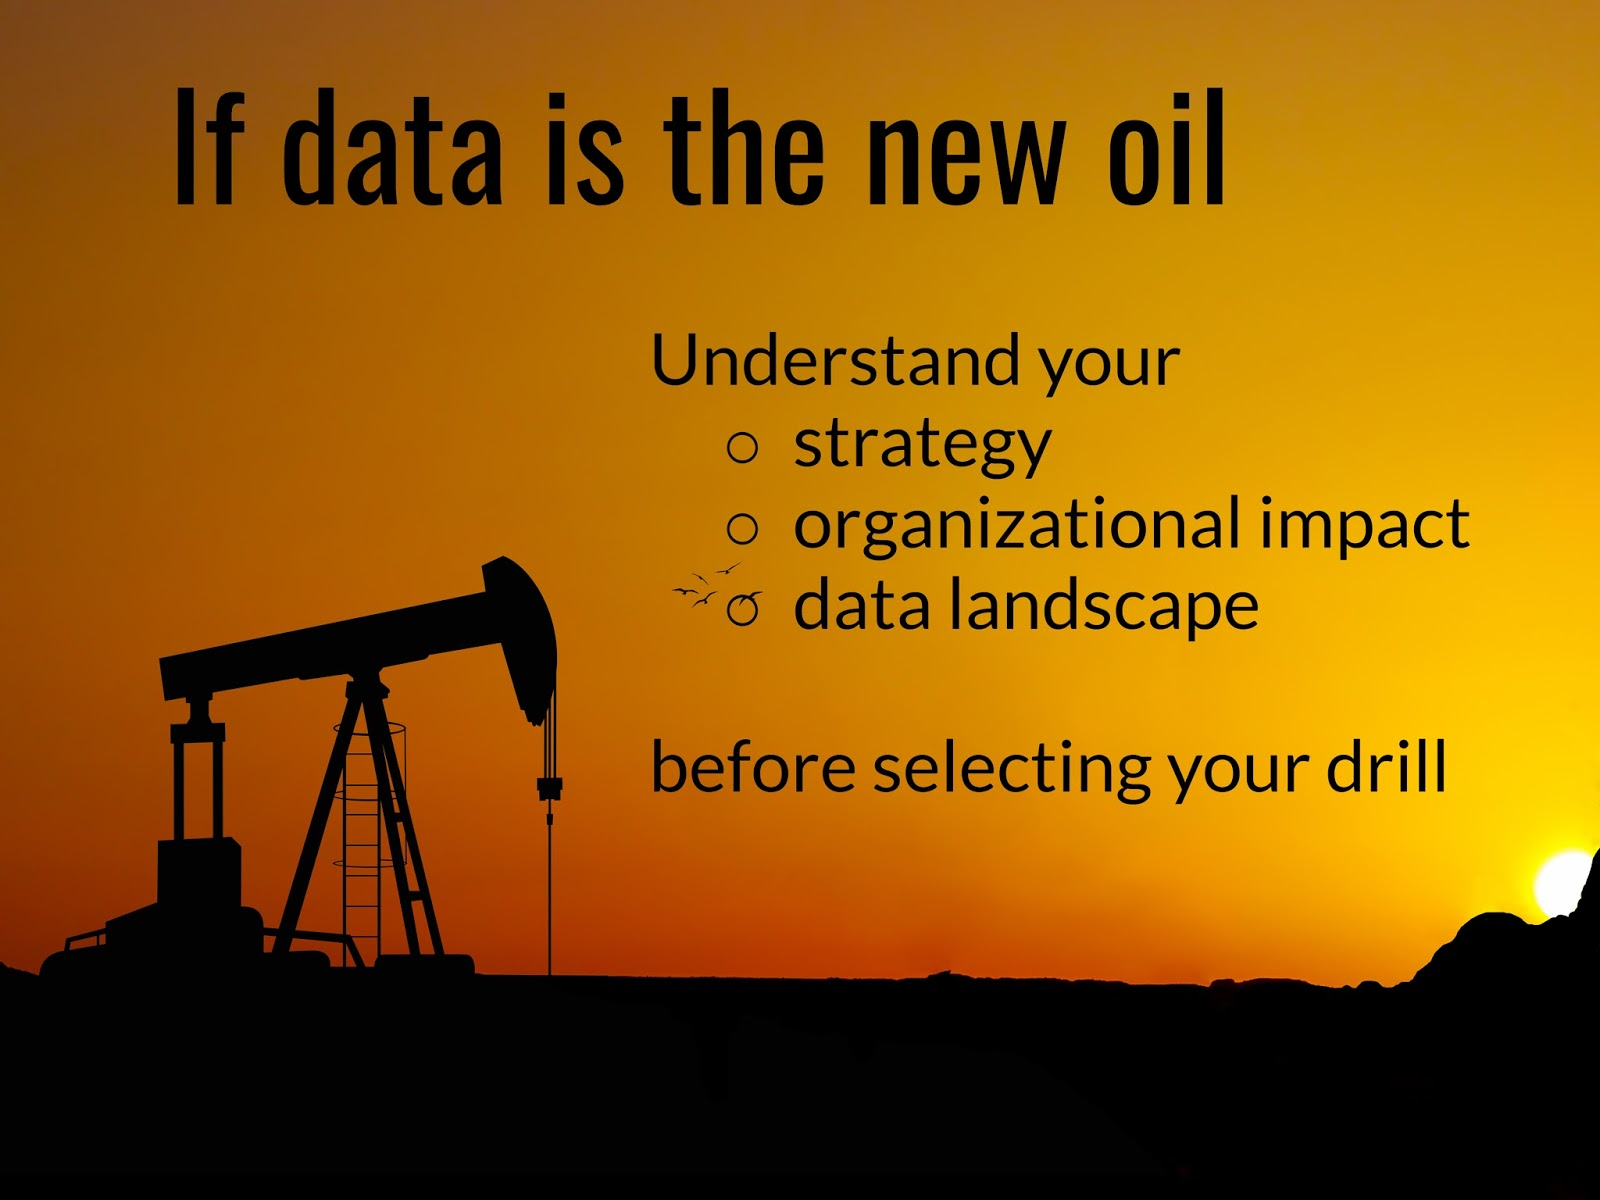 the new oil A new commodity spawns a lucrative, fast-growing industry, prompting  are  being raised by the giants that deal in data, the oil of the digital era.